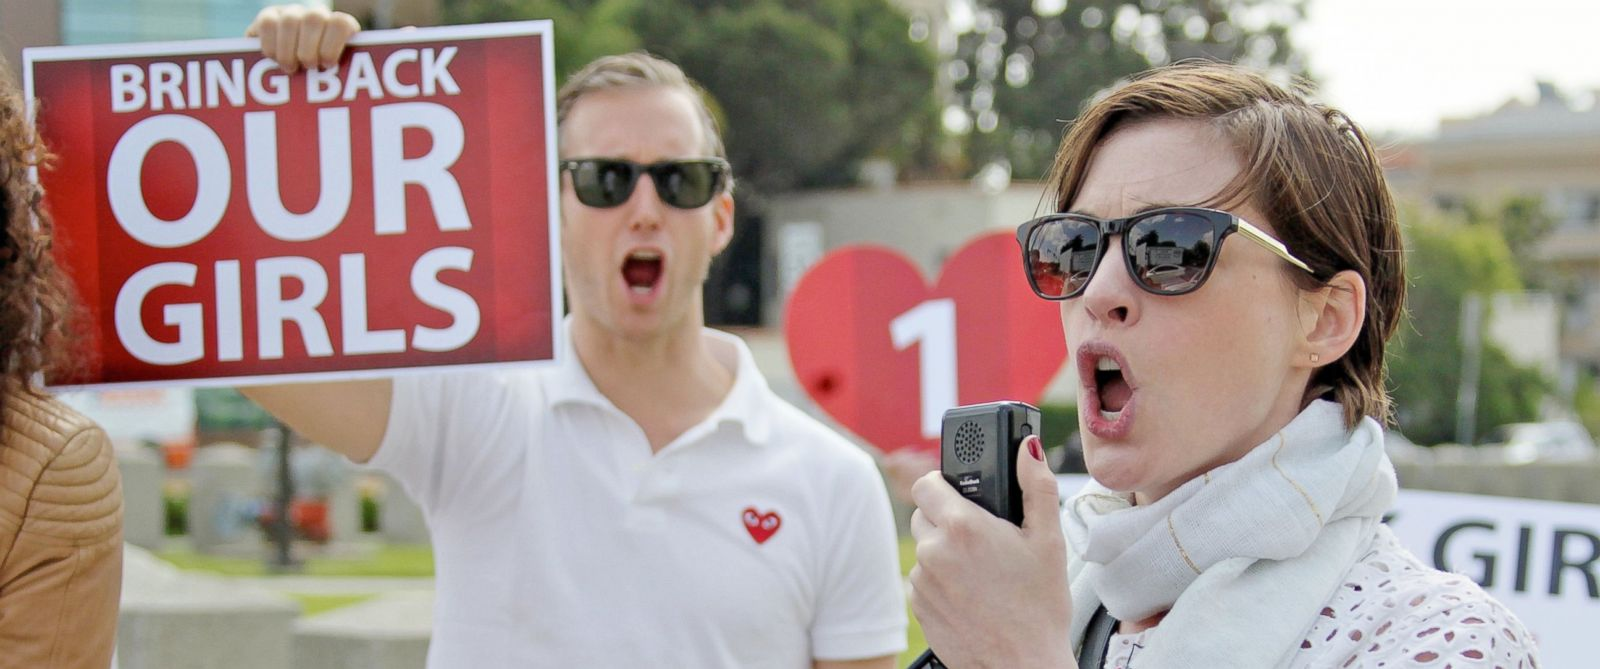 PHOTO: Anne Hathaway and husband Adam Schulman join a Bring Back Our Girls rally in Los Angeles, May 8, 2014.